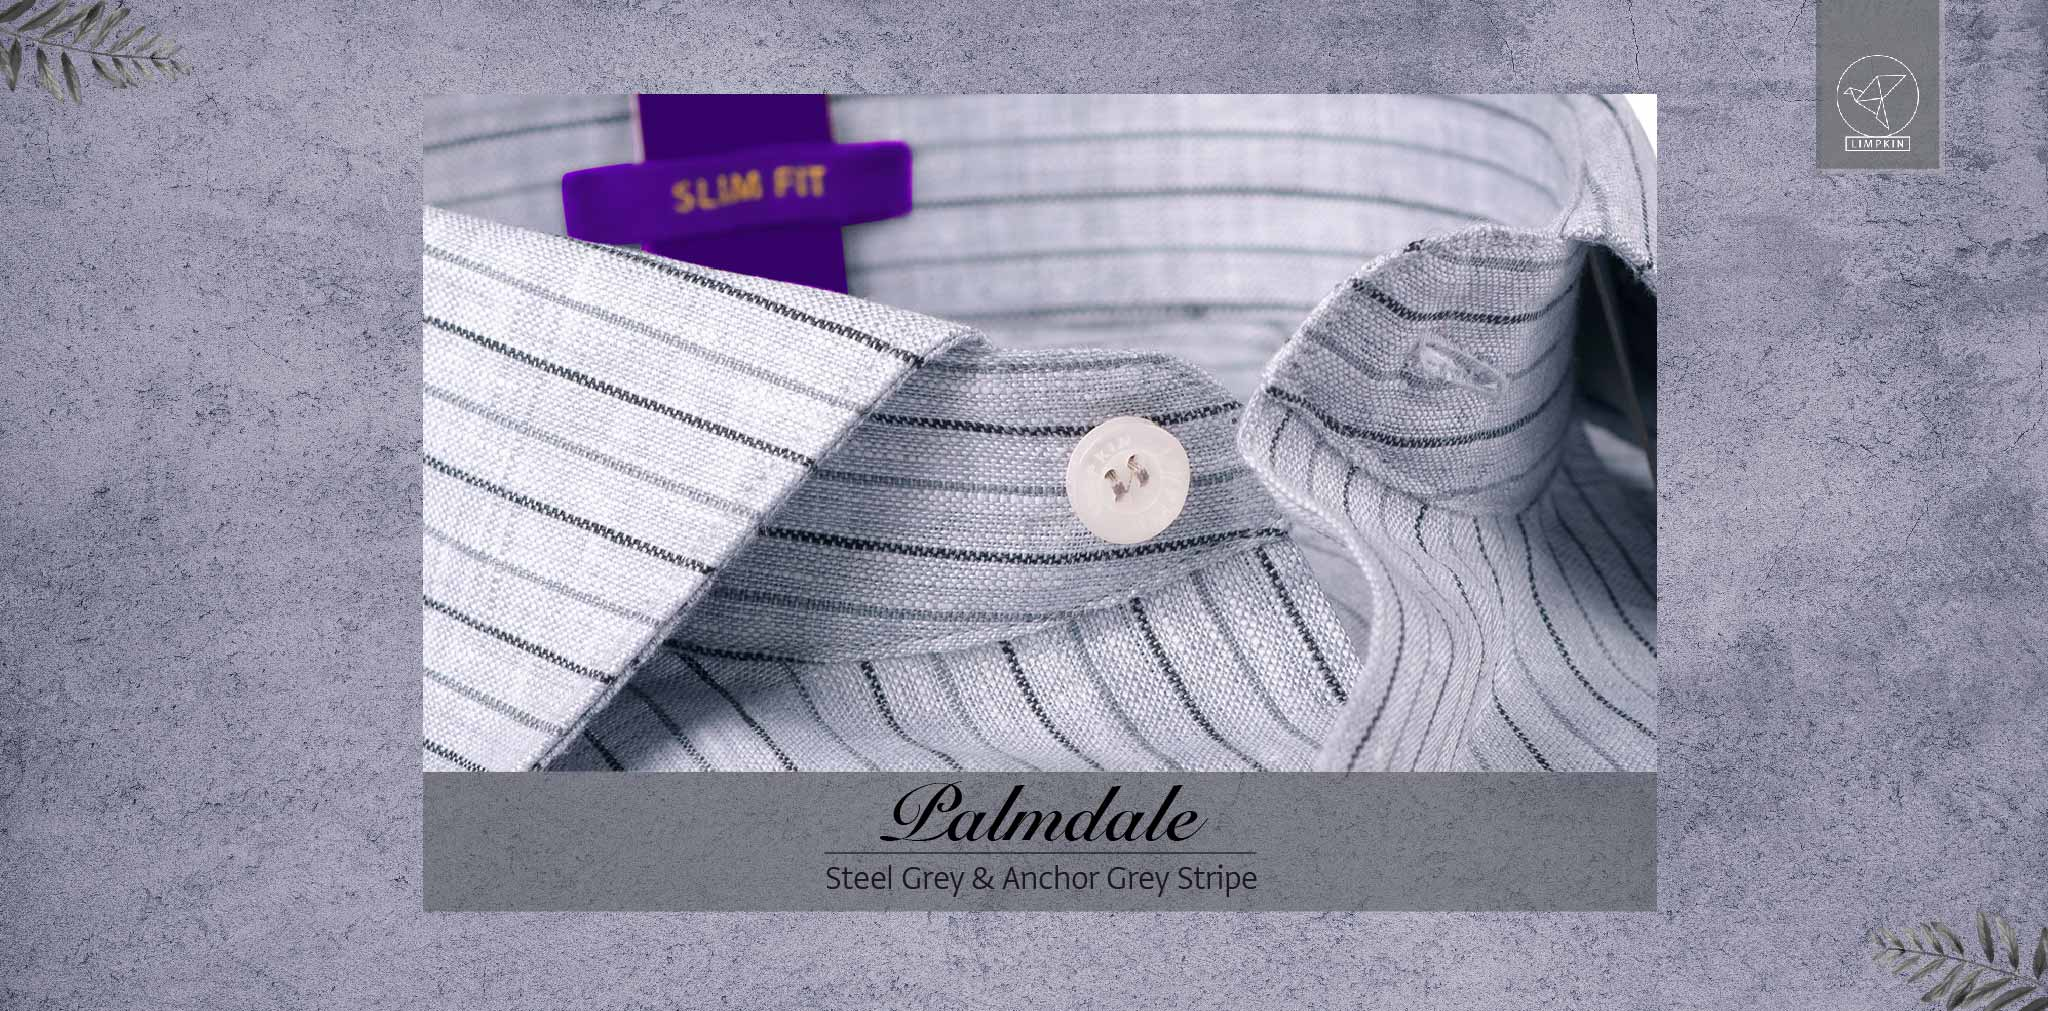 Palmdale- Steel Grey & Anchor Grey Stripe- 66's Lea Pure Luxury Linen- Delivery from 10th March - Banner